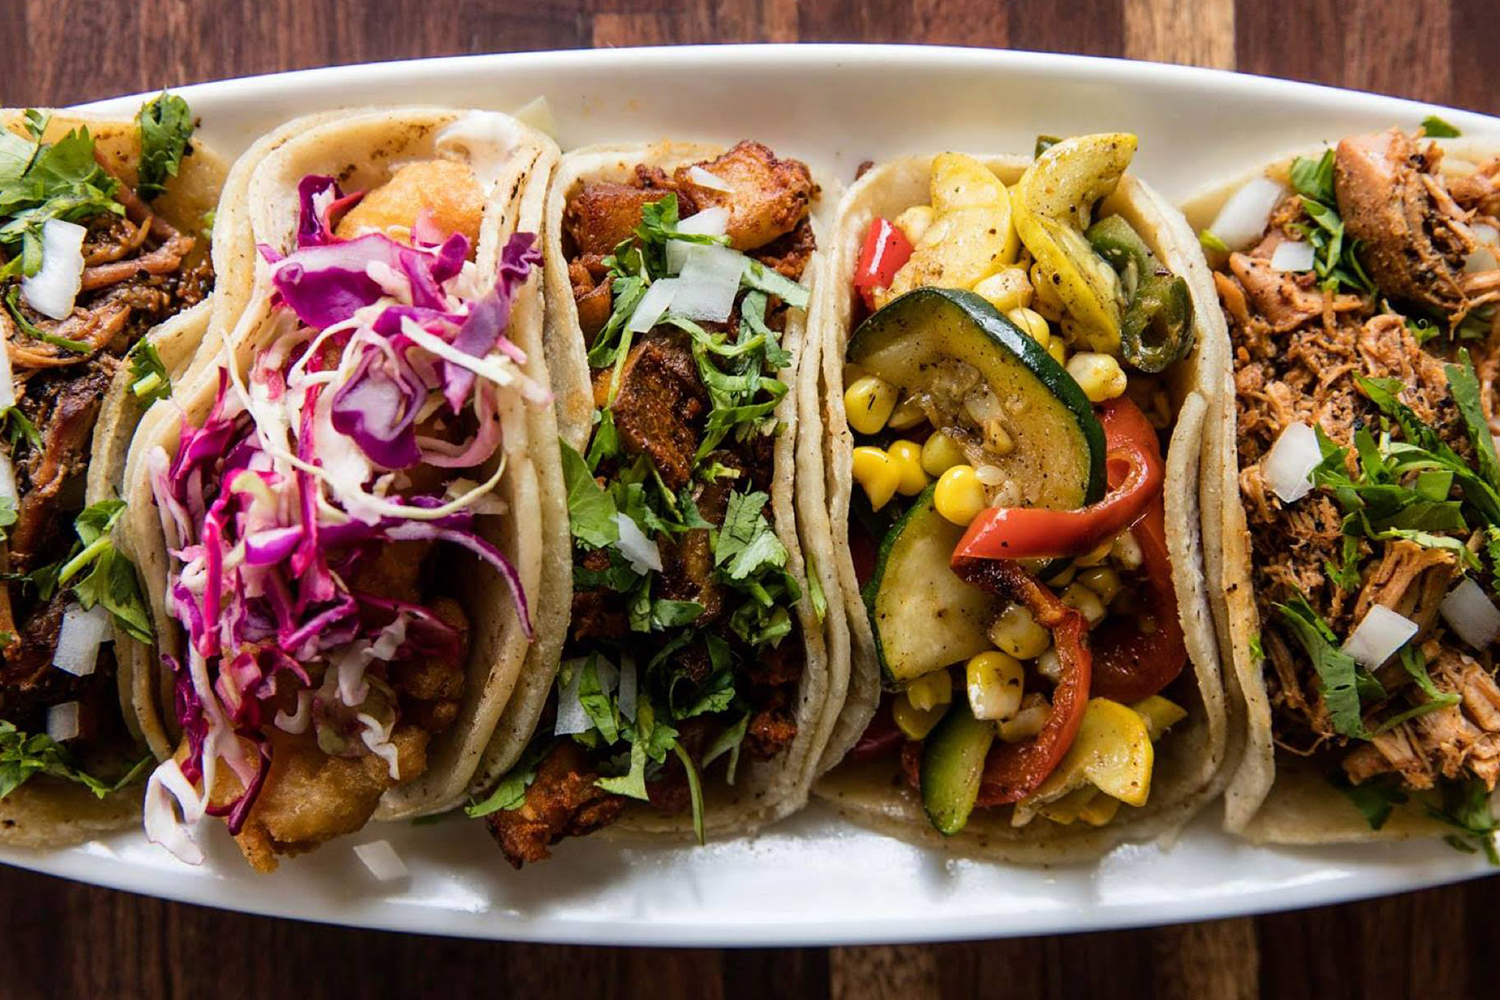 Tacolicious is one of the eight best taco spots in S.F.